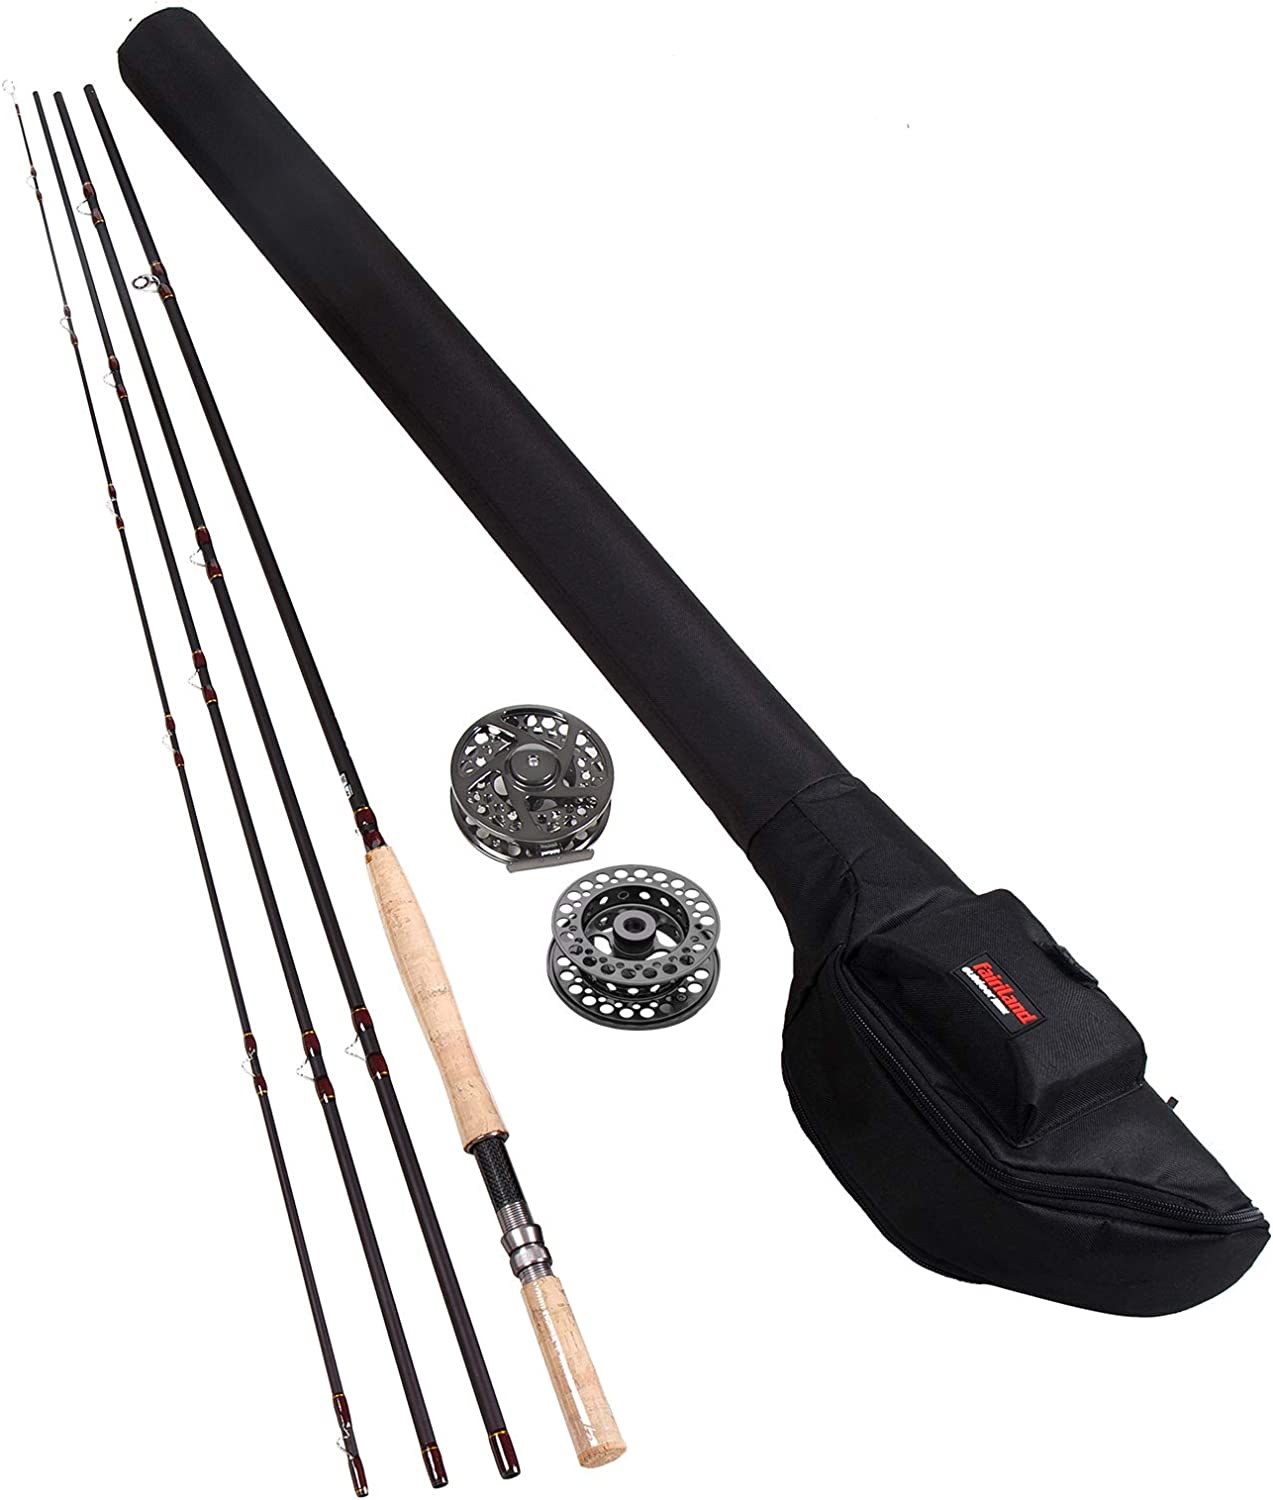 Fairiland Fly Fishing Sacramento 40% OFF Cheap Sale Mall Rod and Reel Beginner for Kit 14' 9 Combo